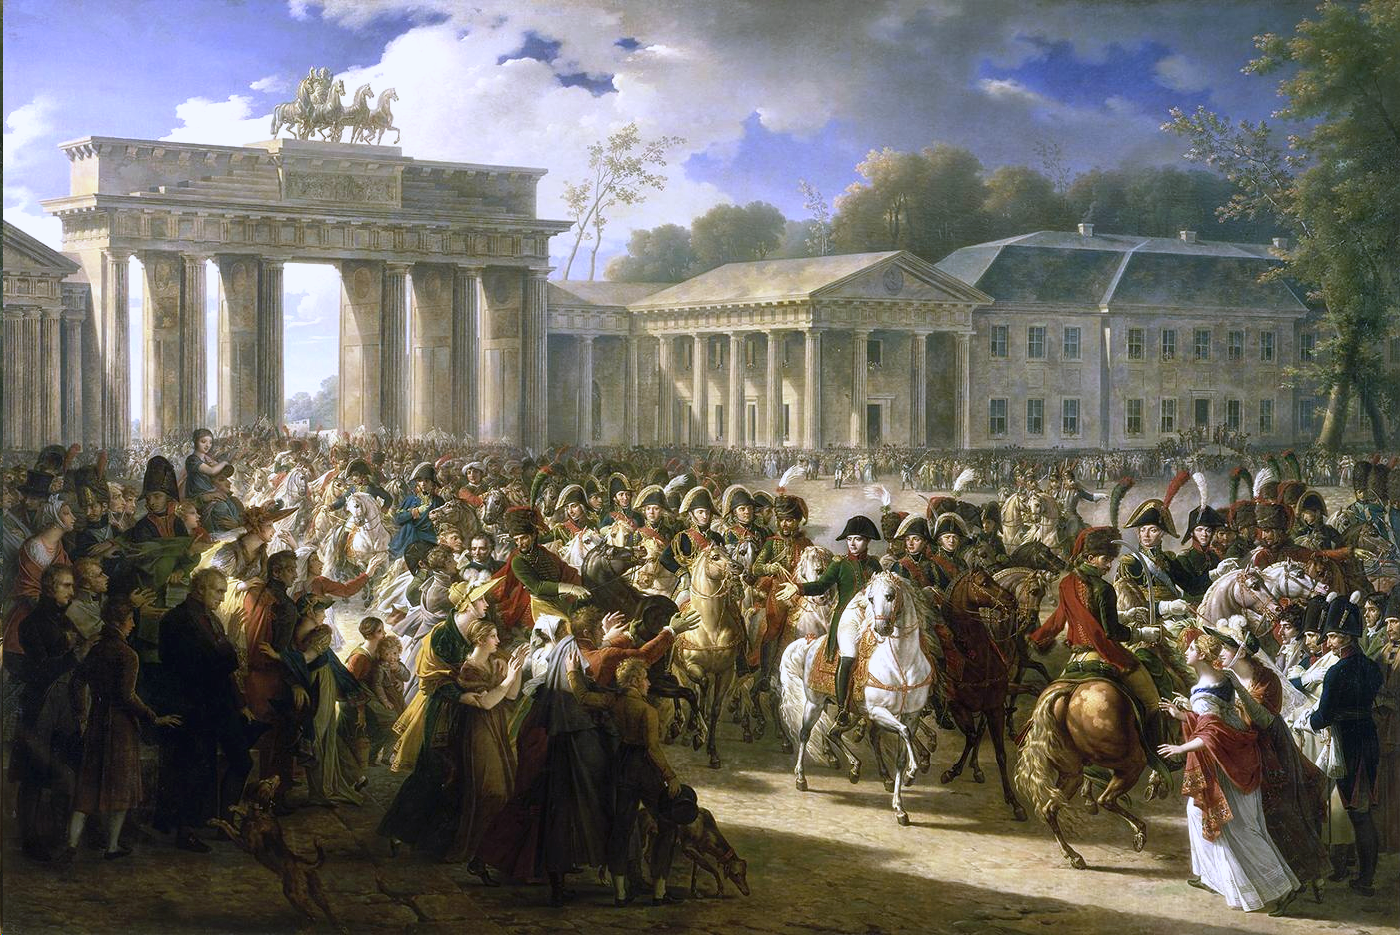 /uploads/images/Revues/Charles_Meynier_-_Napoleon_in_Berlin.png